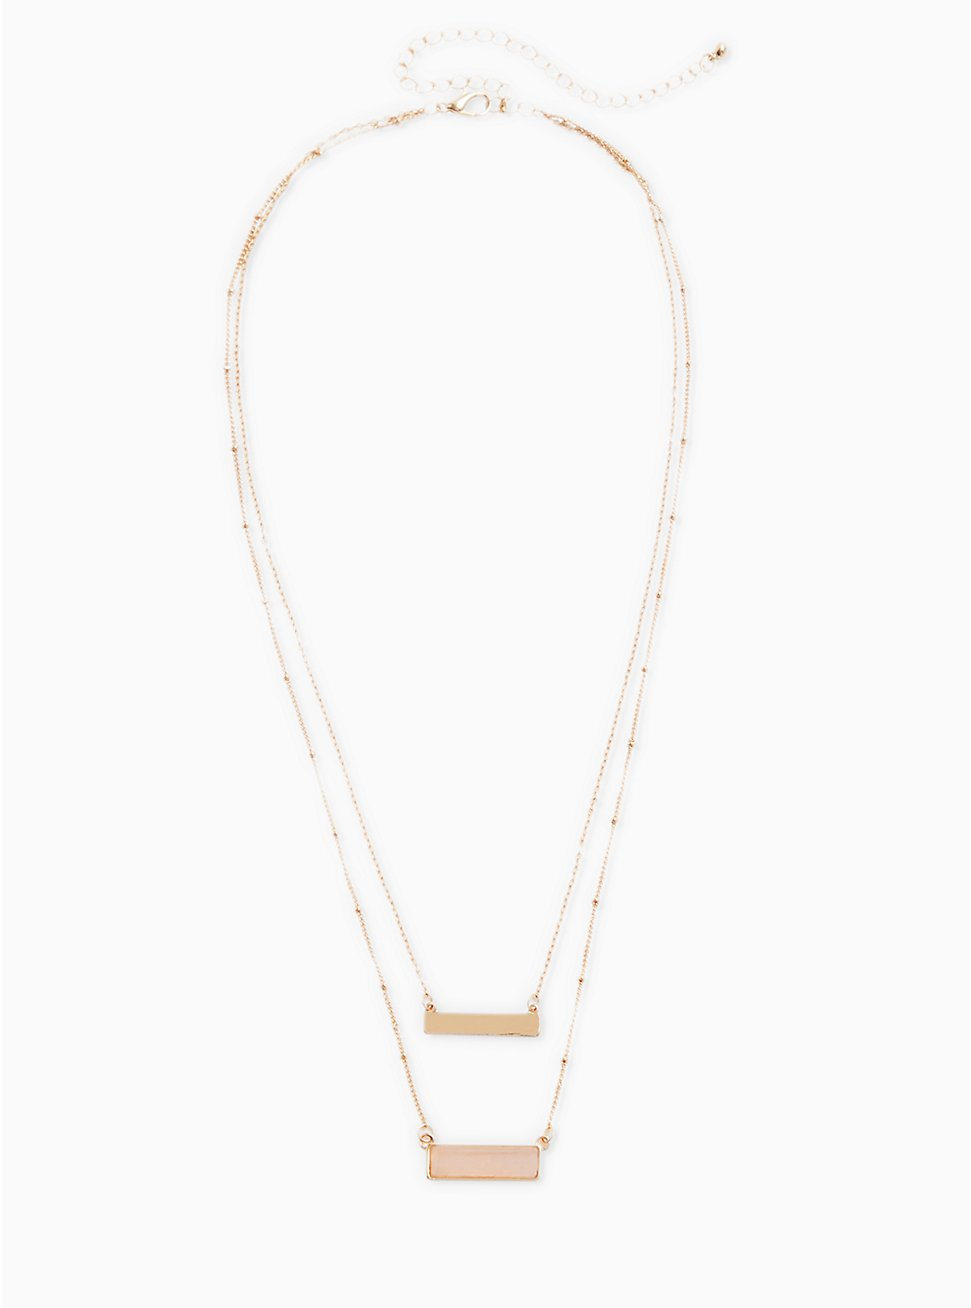 Gold-Tone Layered Bar Necklace, , hi-res